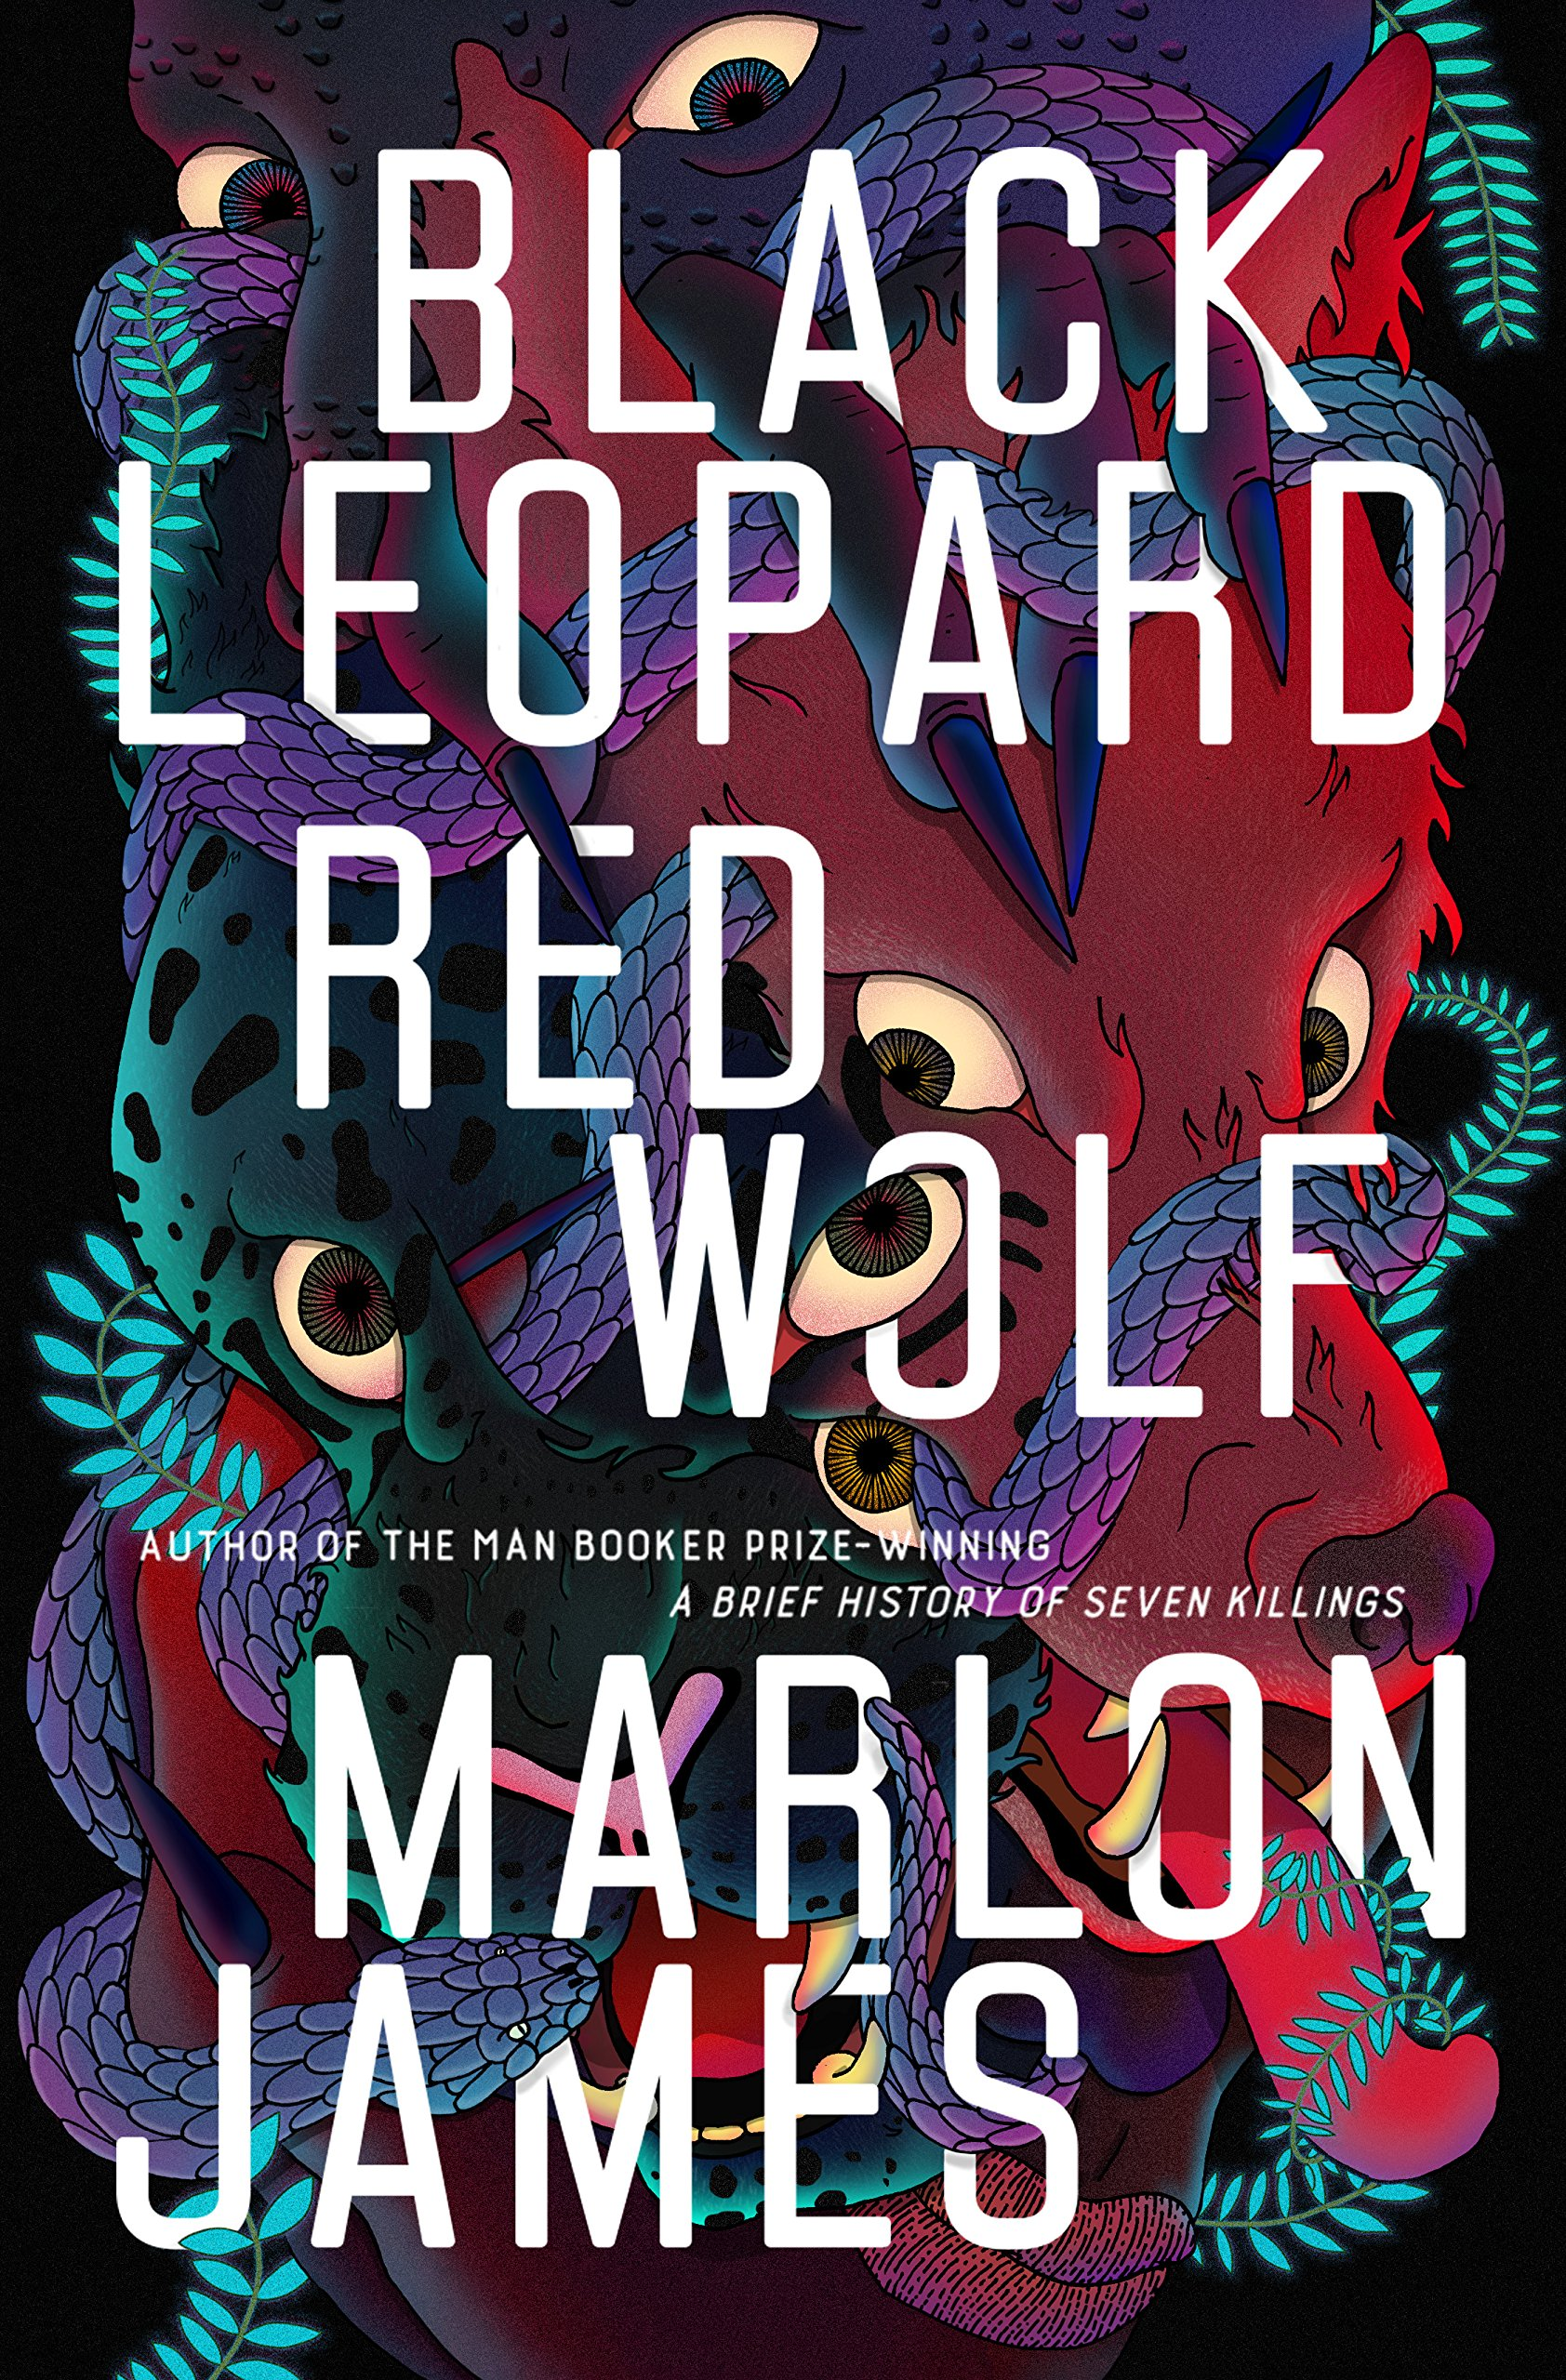 Drawing from African history and mythology and his own rich imagination, Marlon James has written a novel unlike anything that's come before it: a saga of breathtaking adventure that's also an ambitious, involving story.